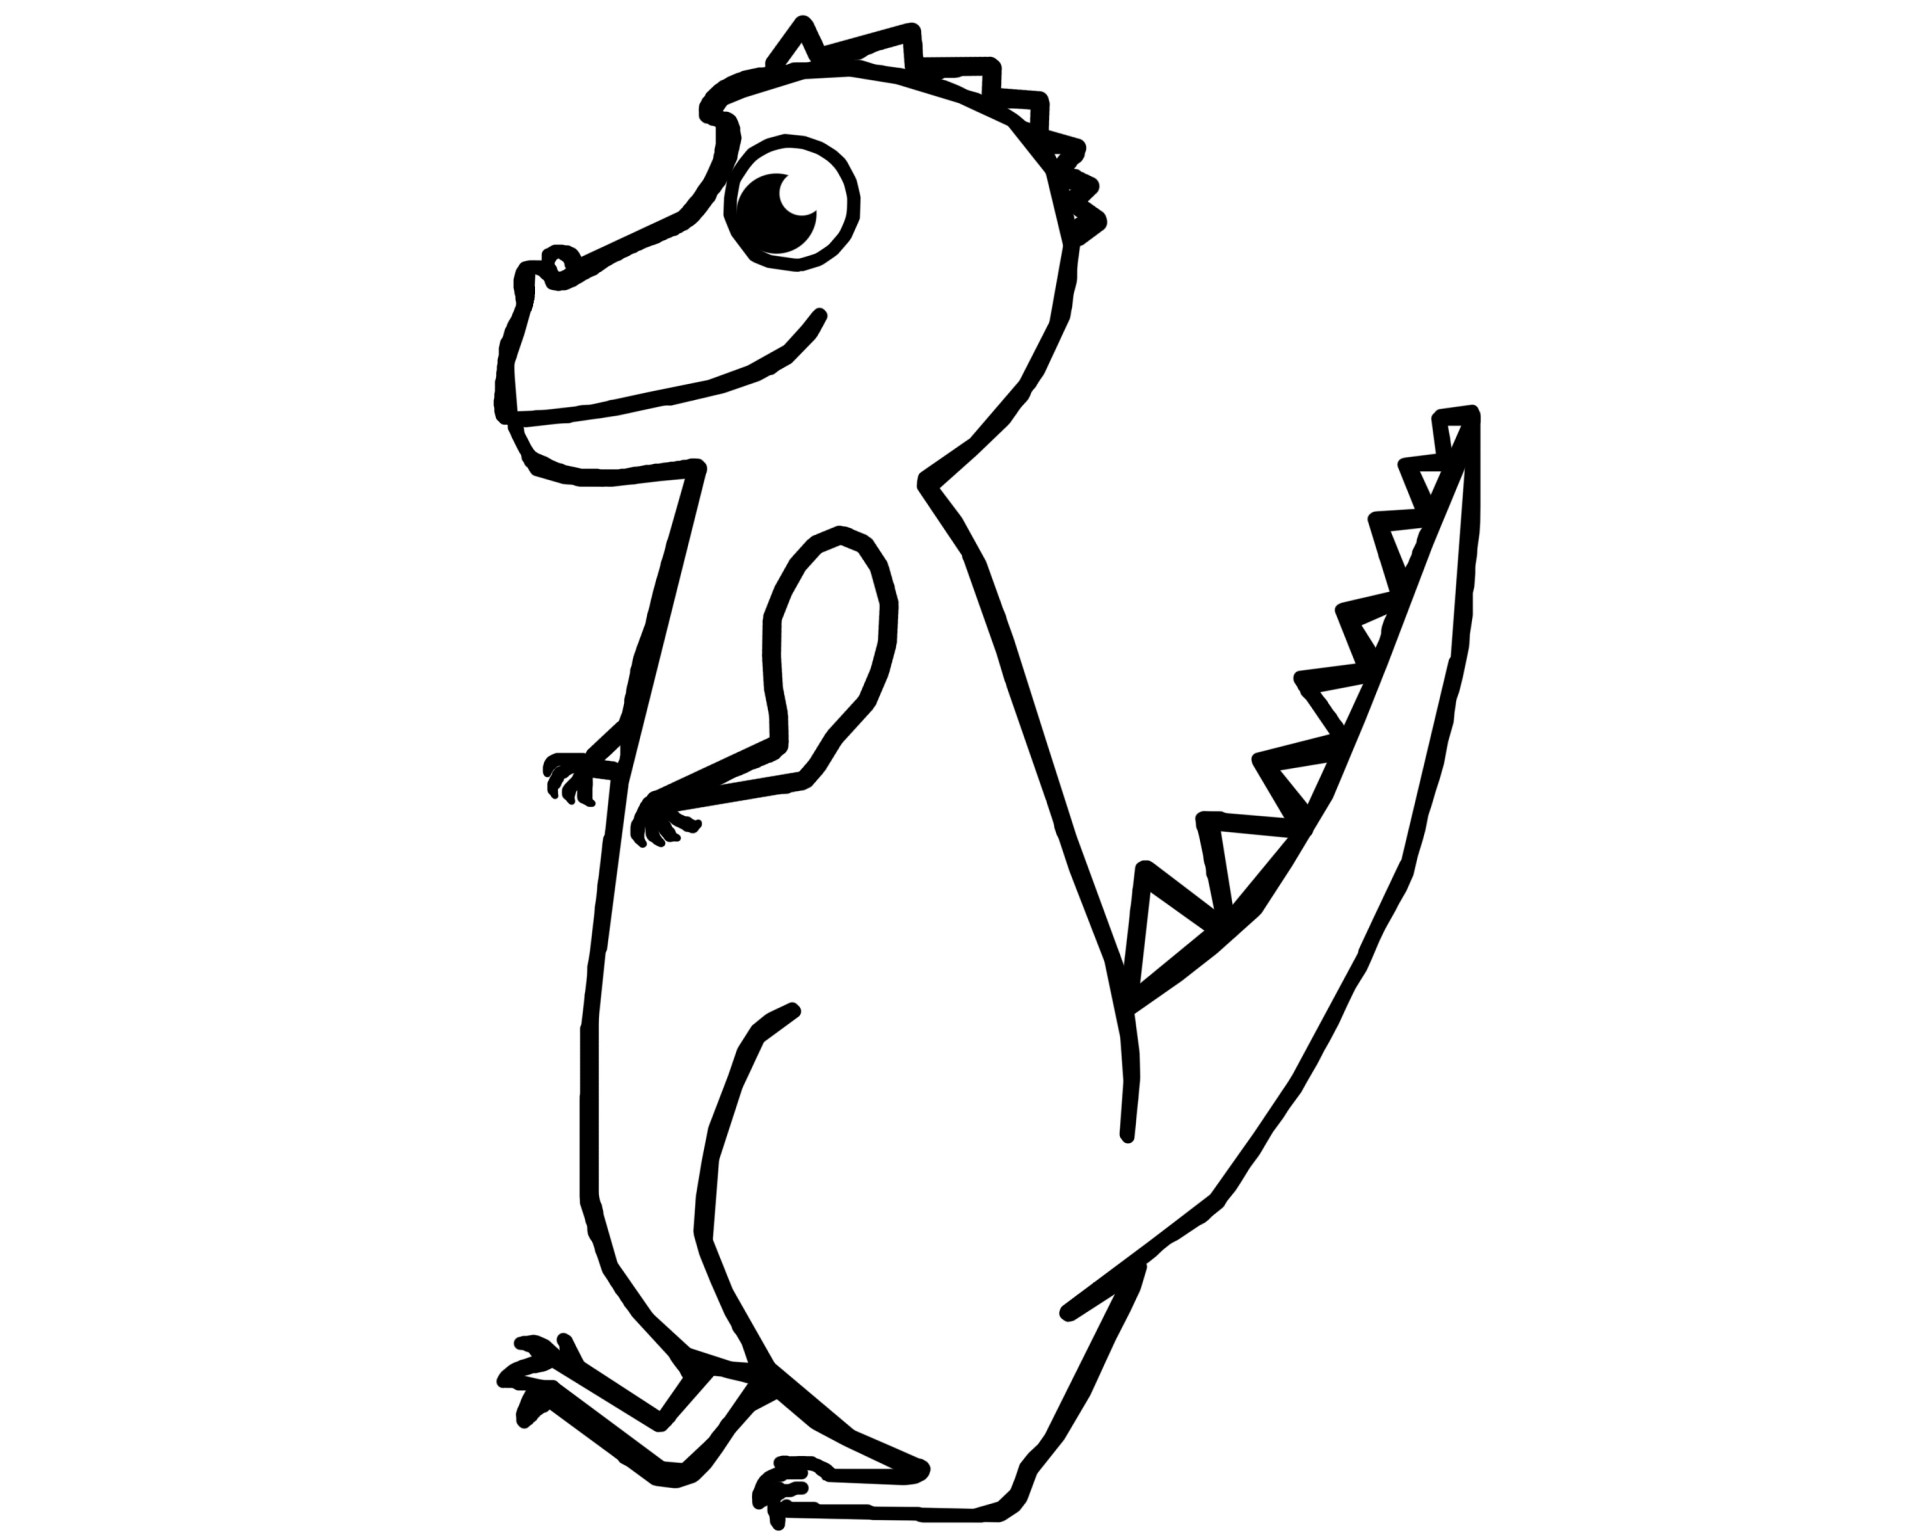 T Rex Dinosaur Outline Free Stock Photo